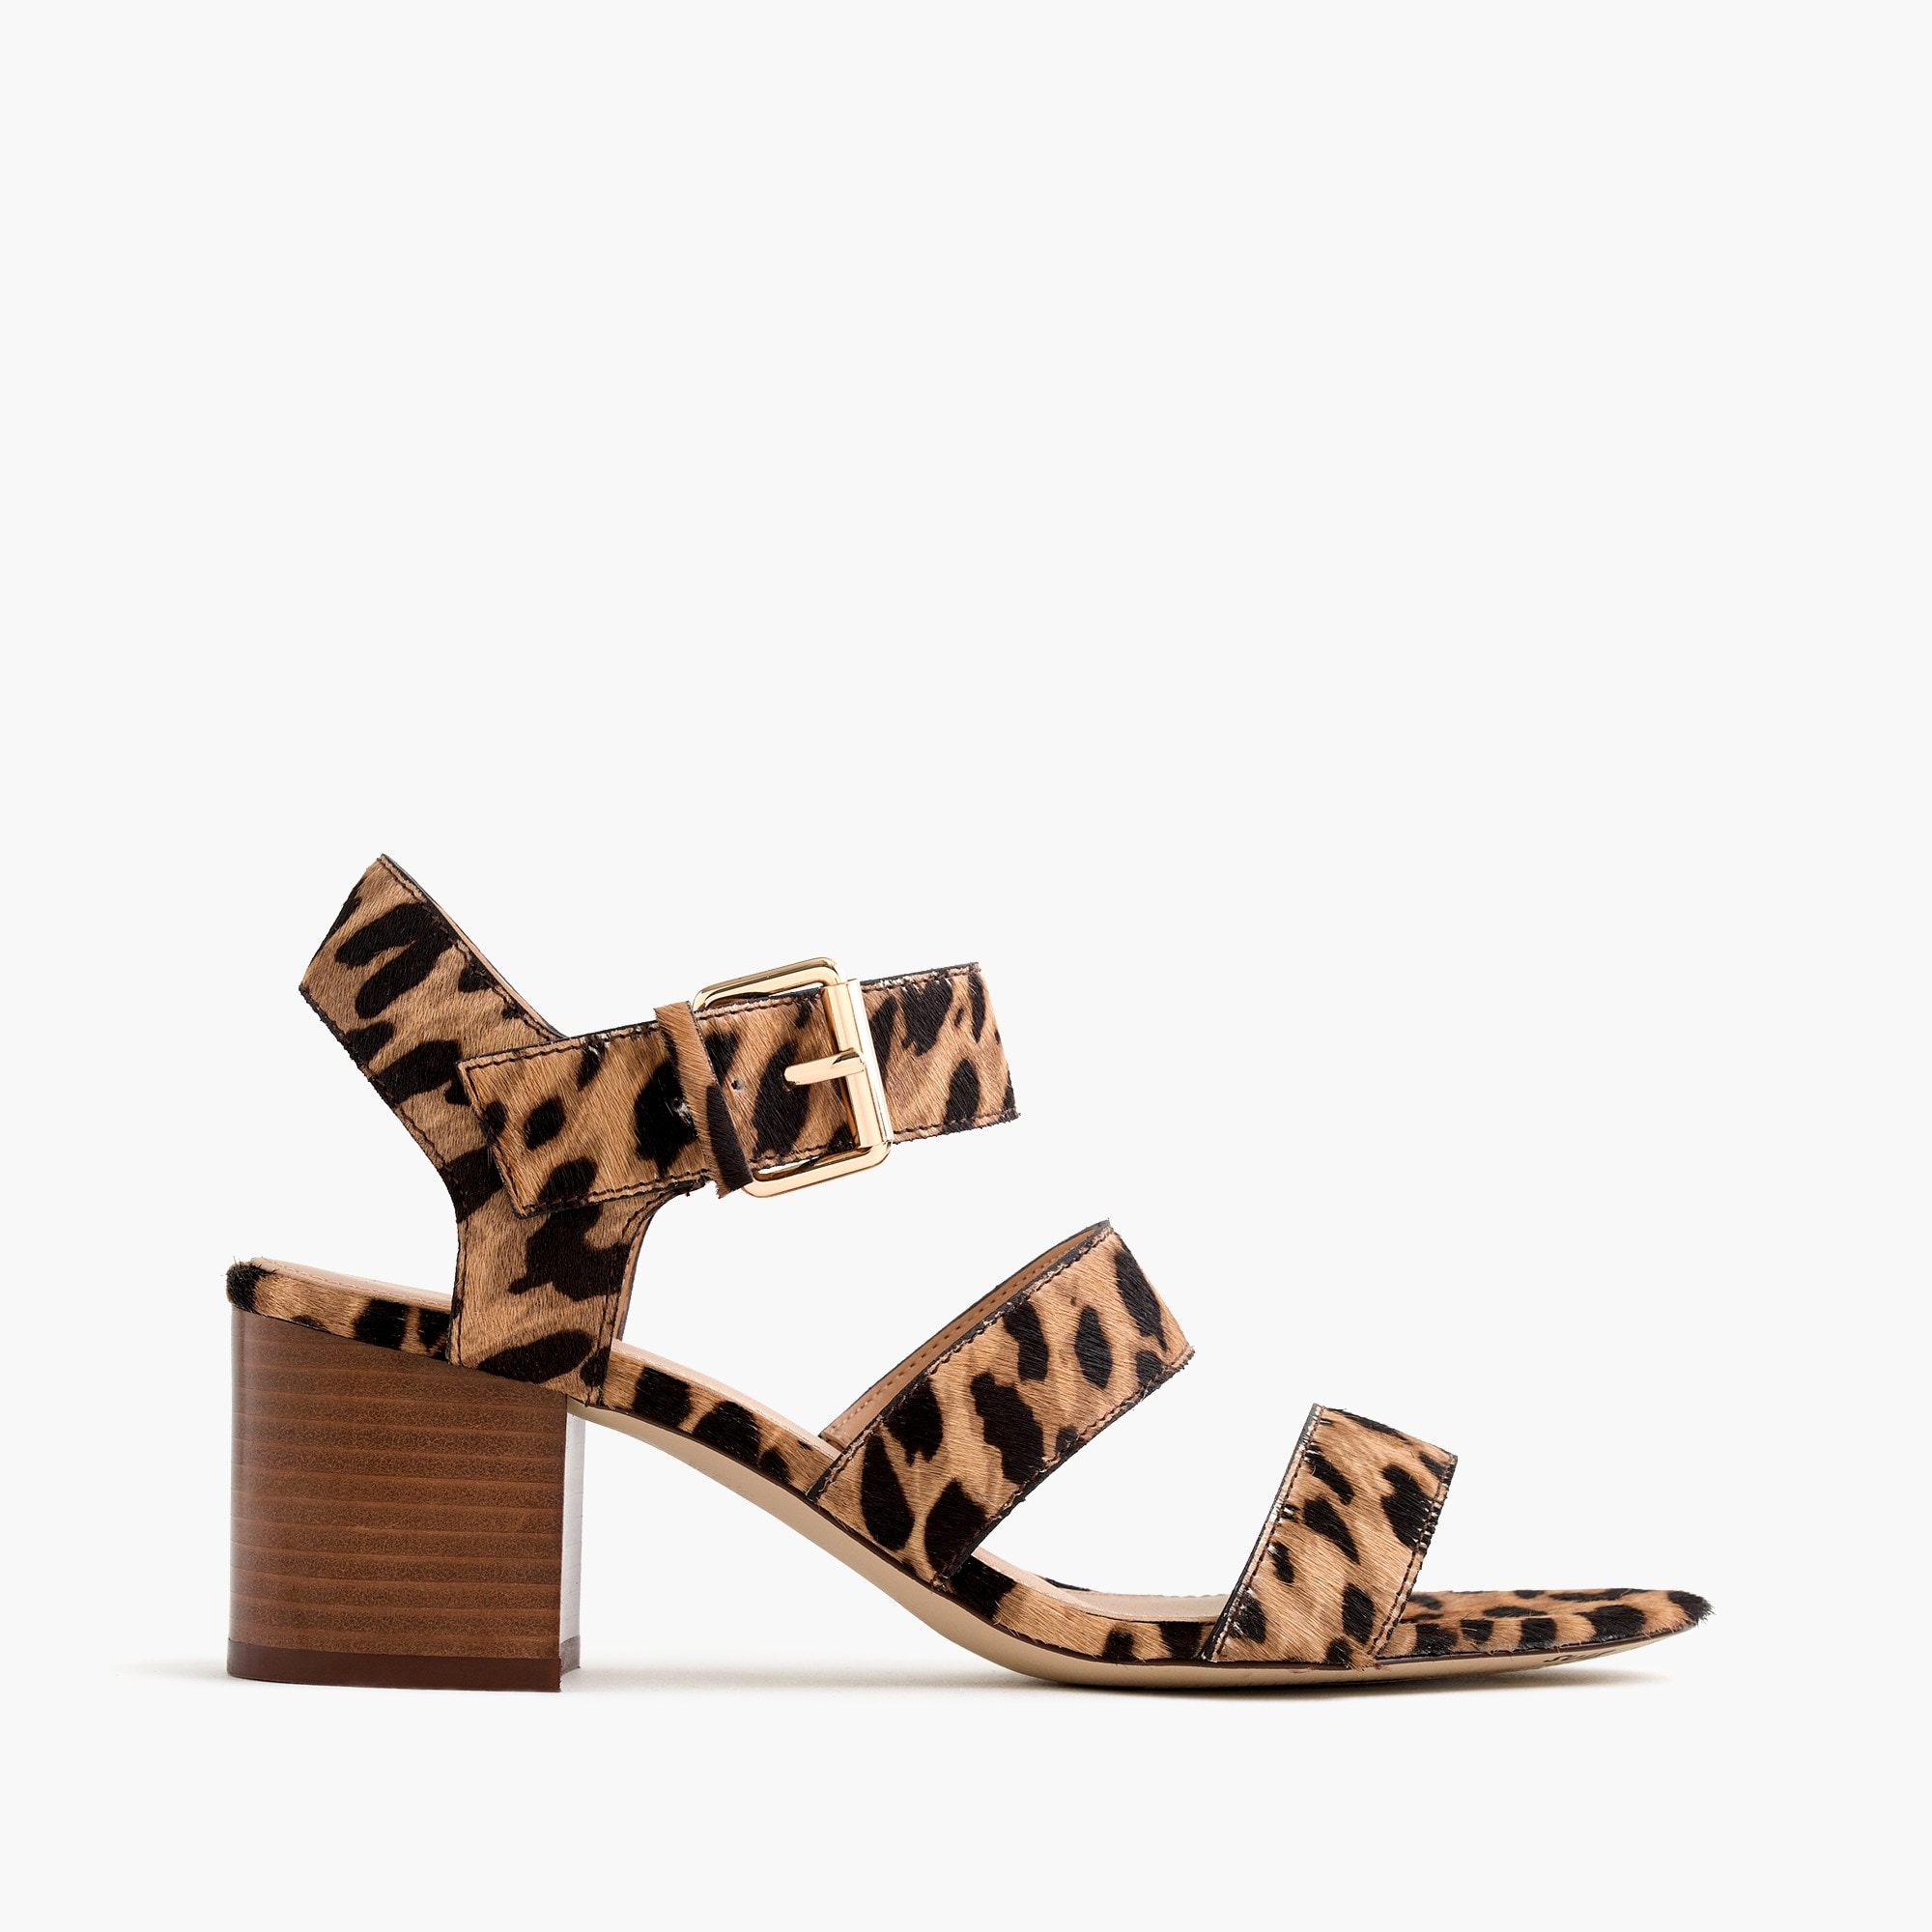 Three-strap sandals in leopard calf hair